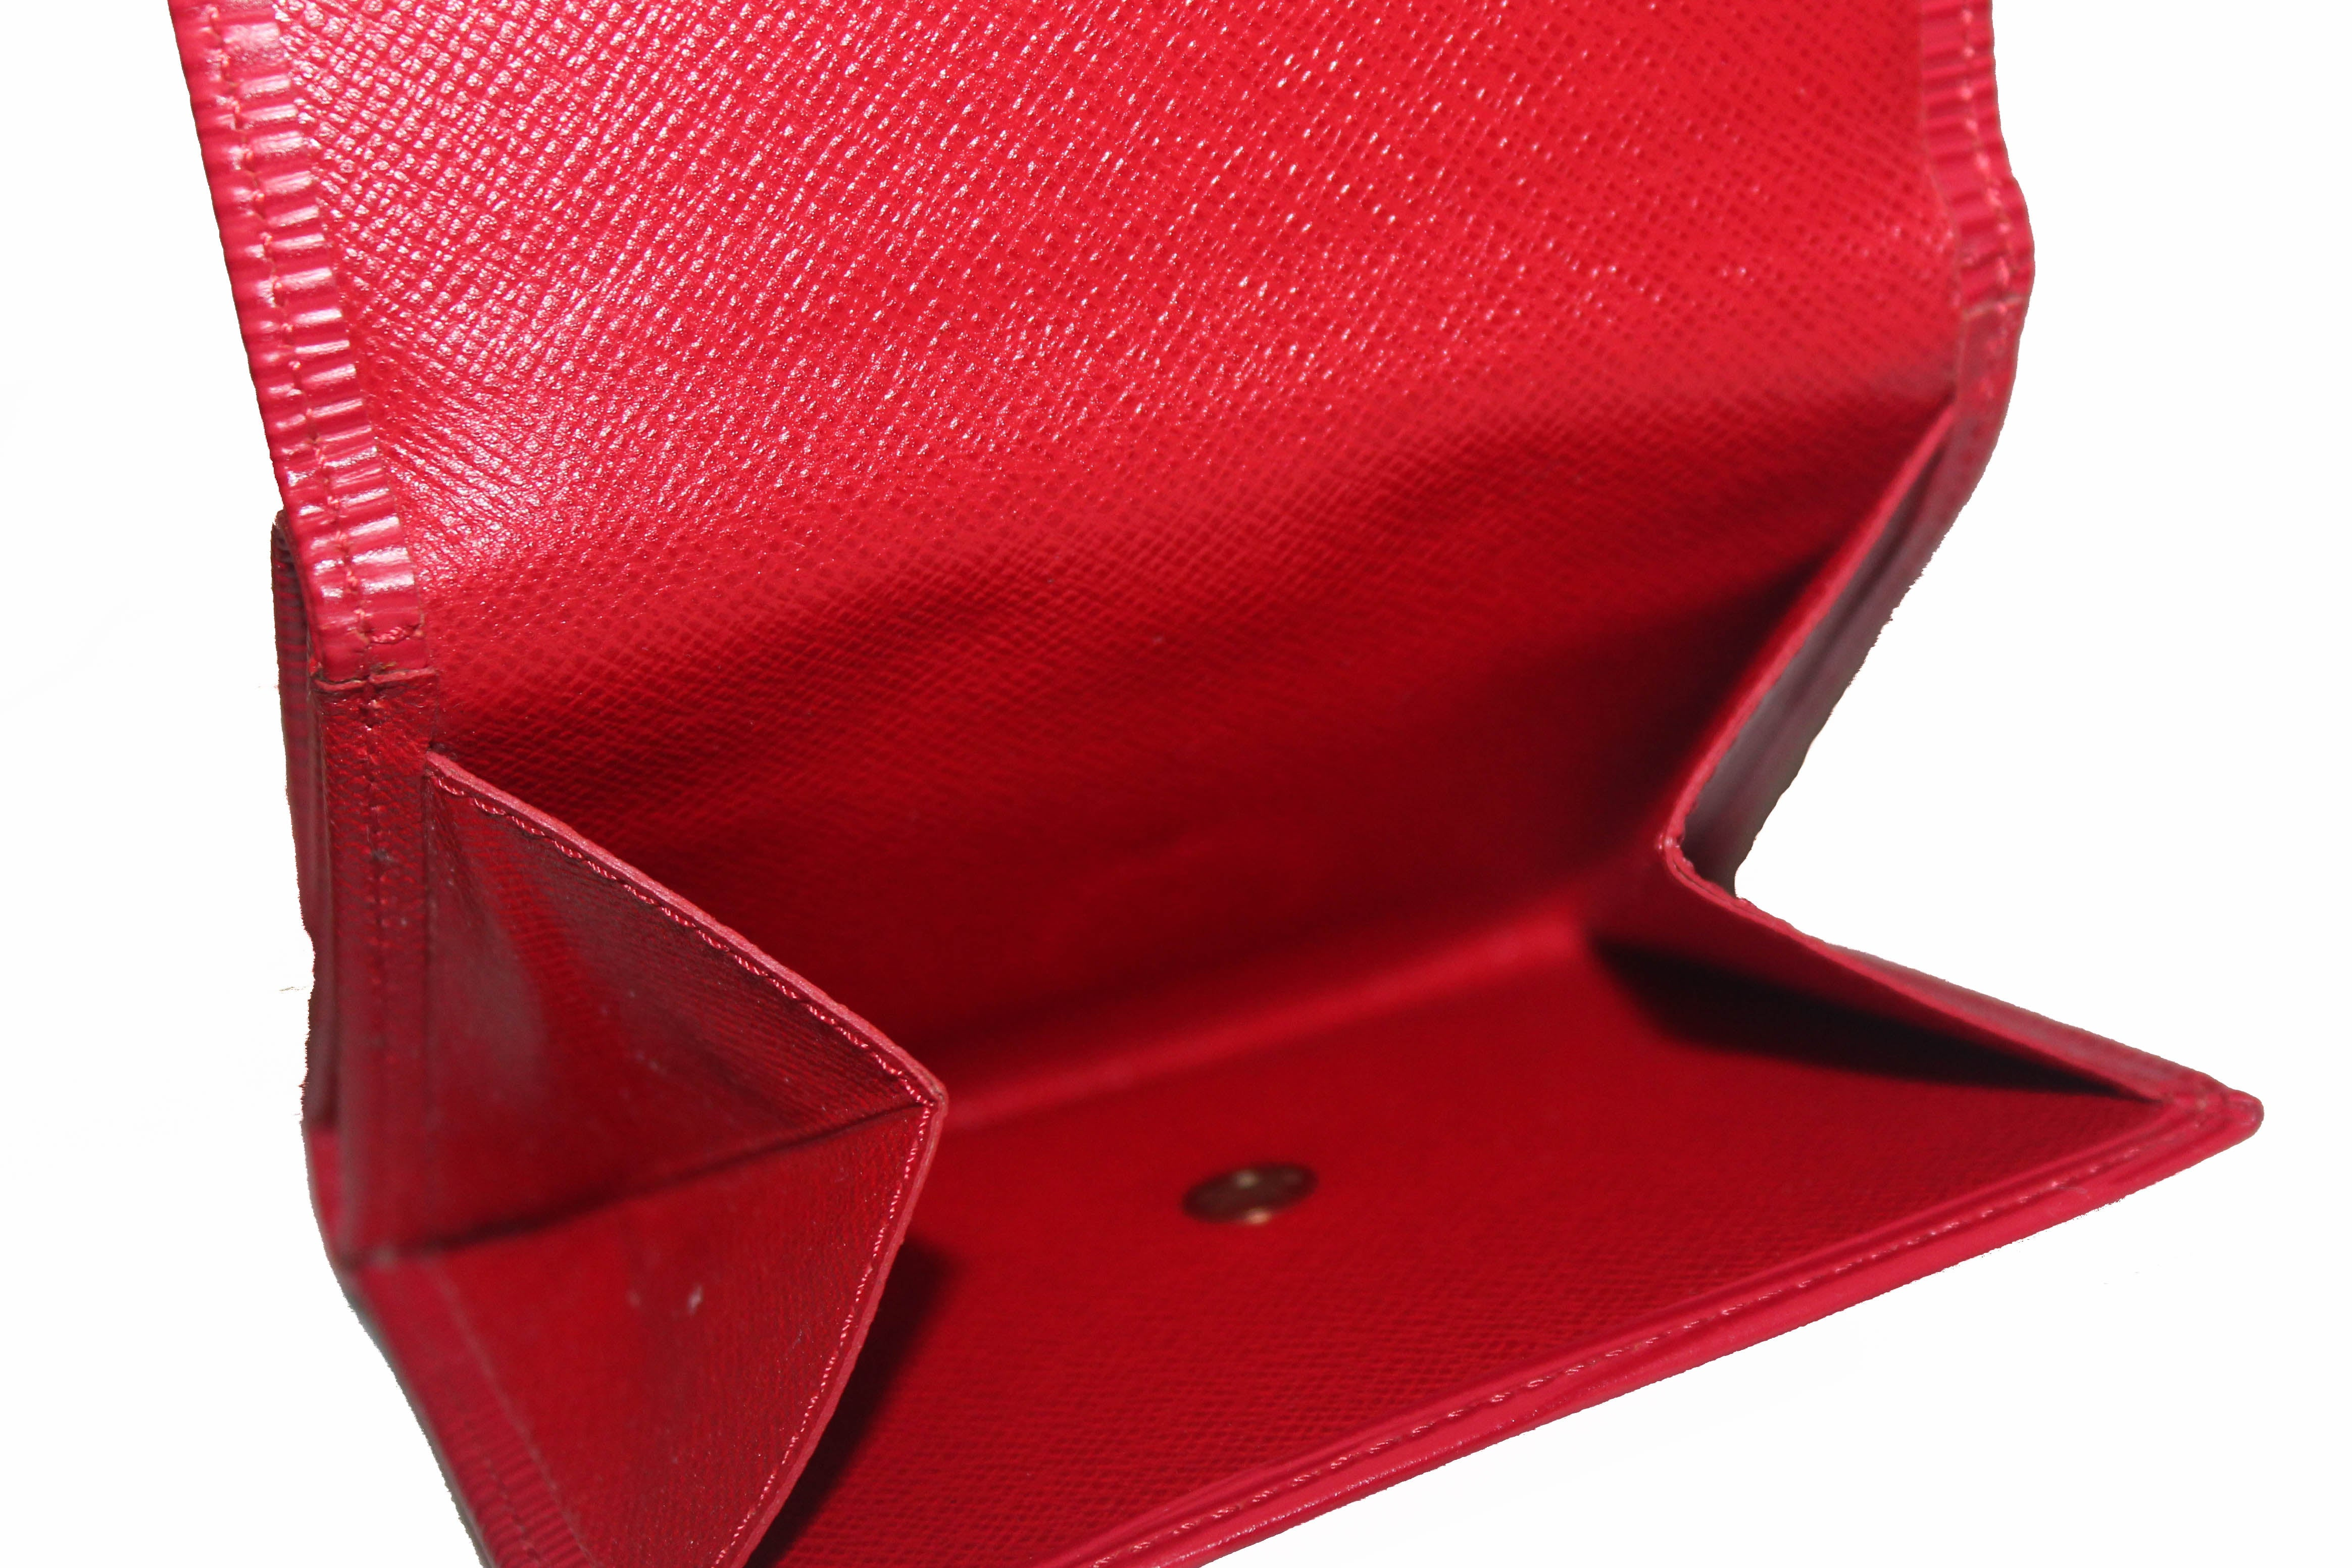 Authentic Louis Vuitton Red Epi Leather Trifold Compact Wallet